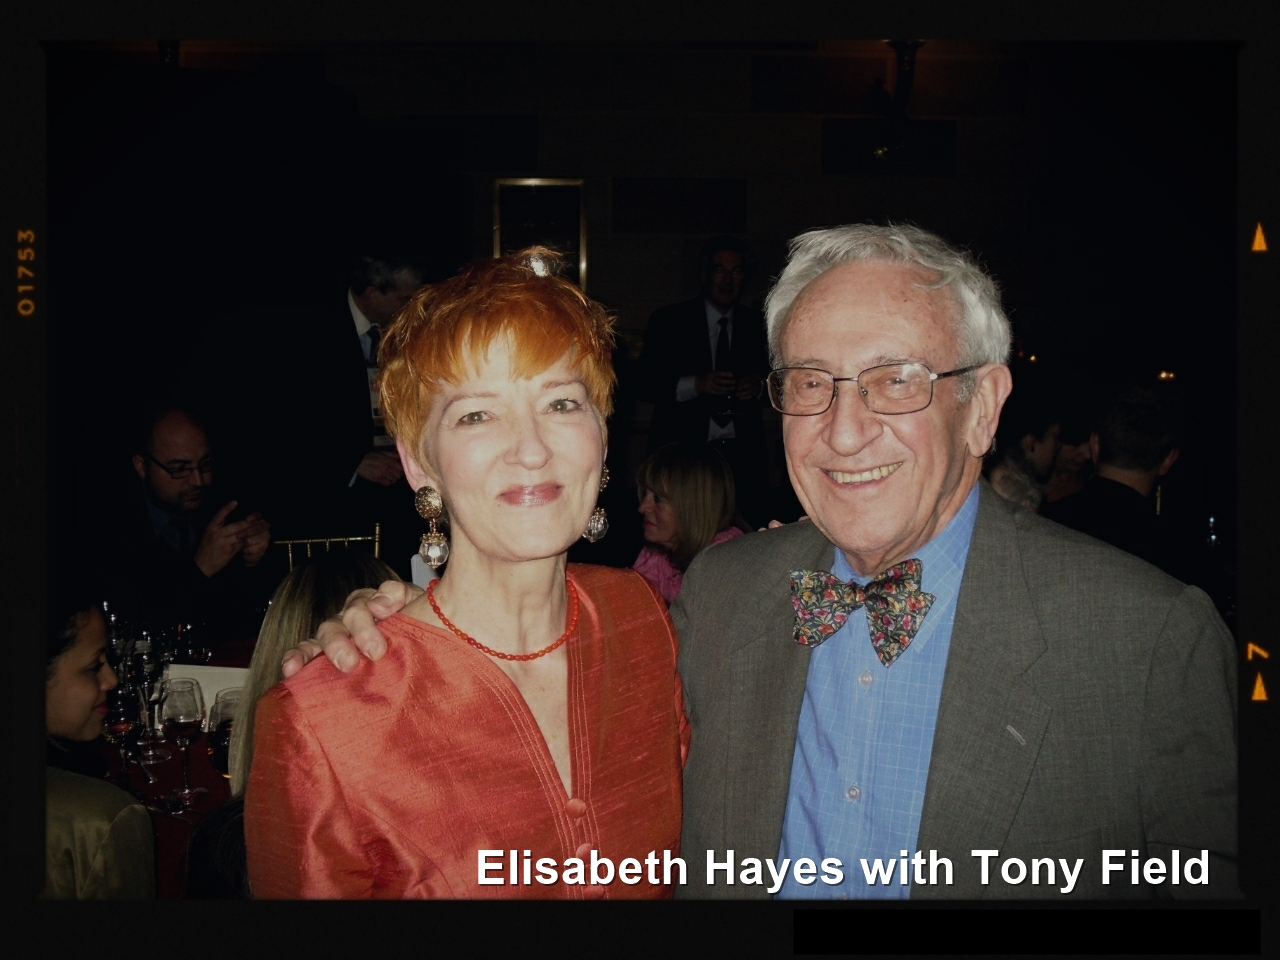 Tony Field and Elizabeth Hayes